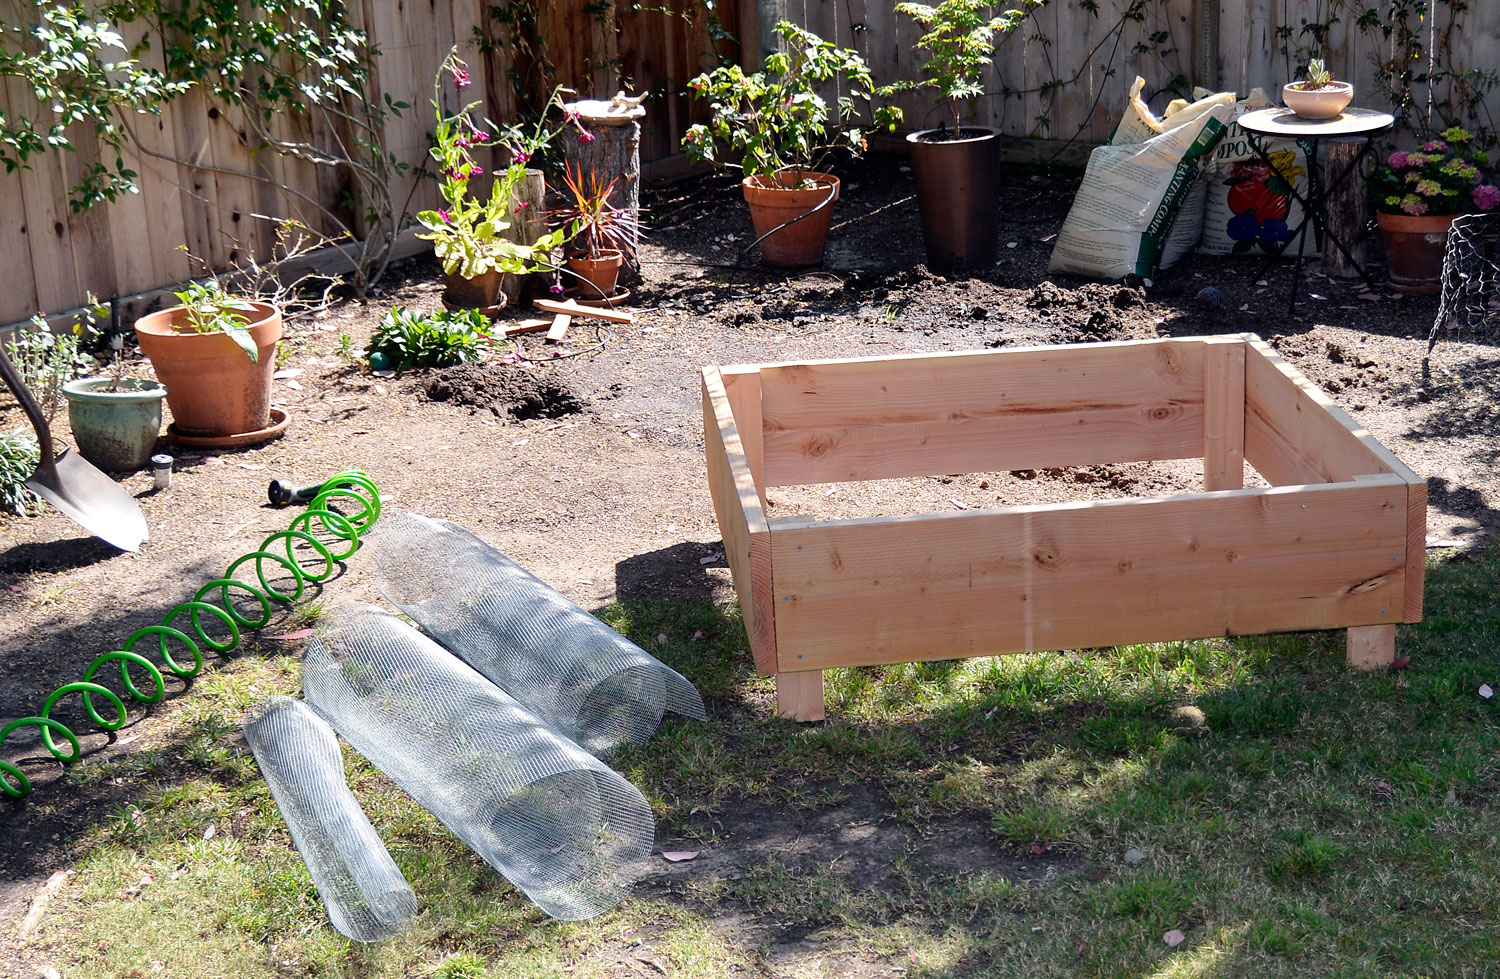 Diy Raised Garden Bed On Legs Build Raised Garden Bed Plans On Legs Diy Bookshelf Design